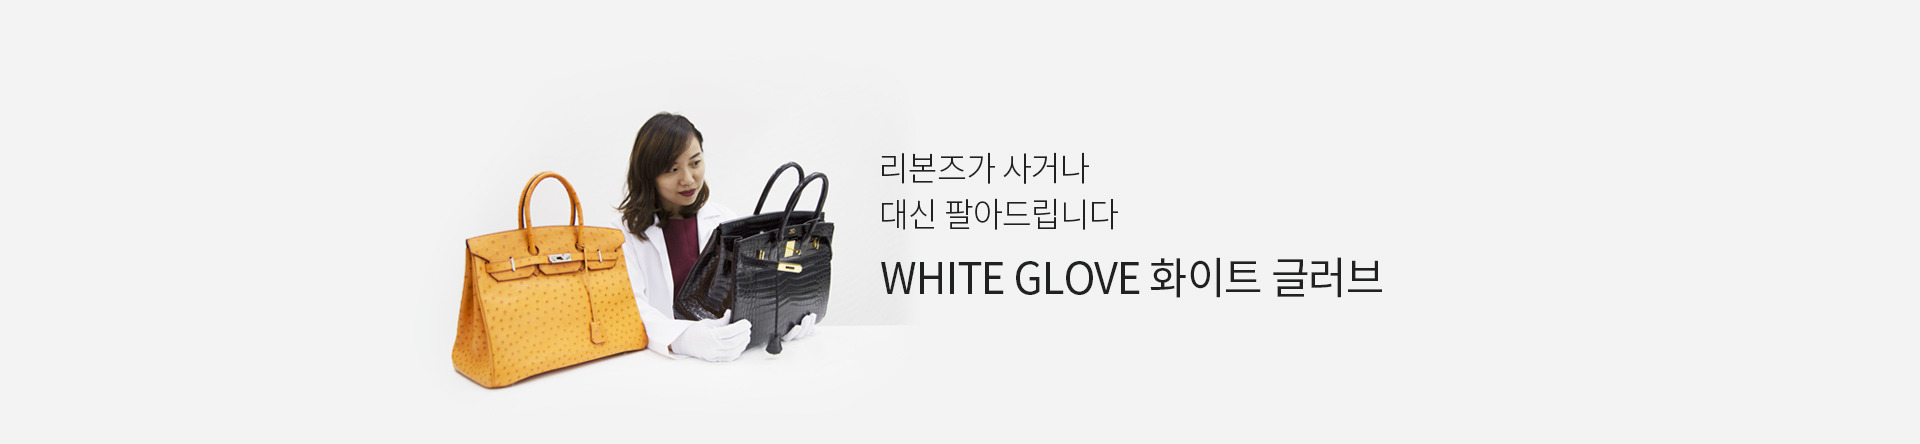 Top_white_glove